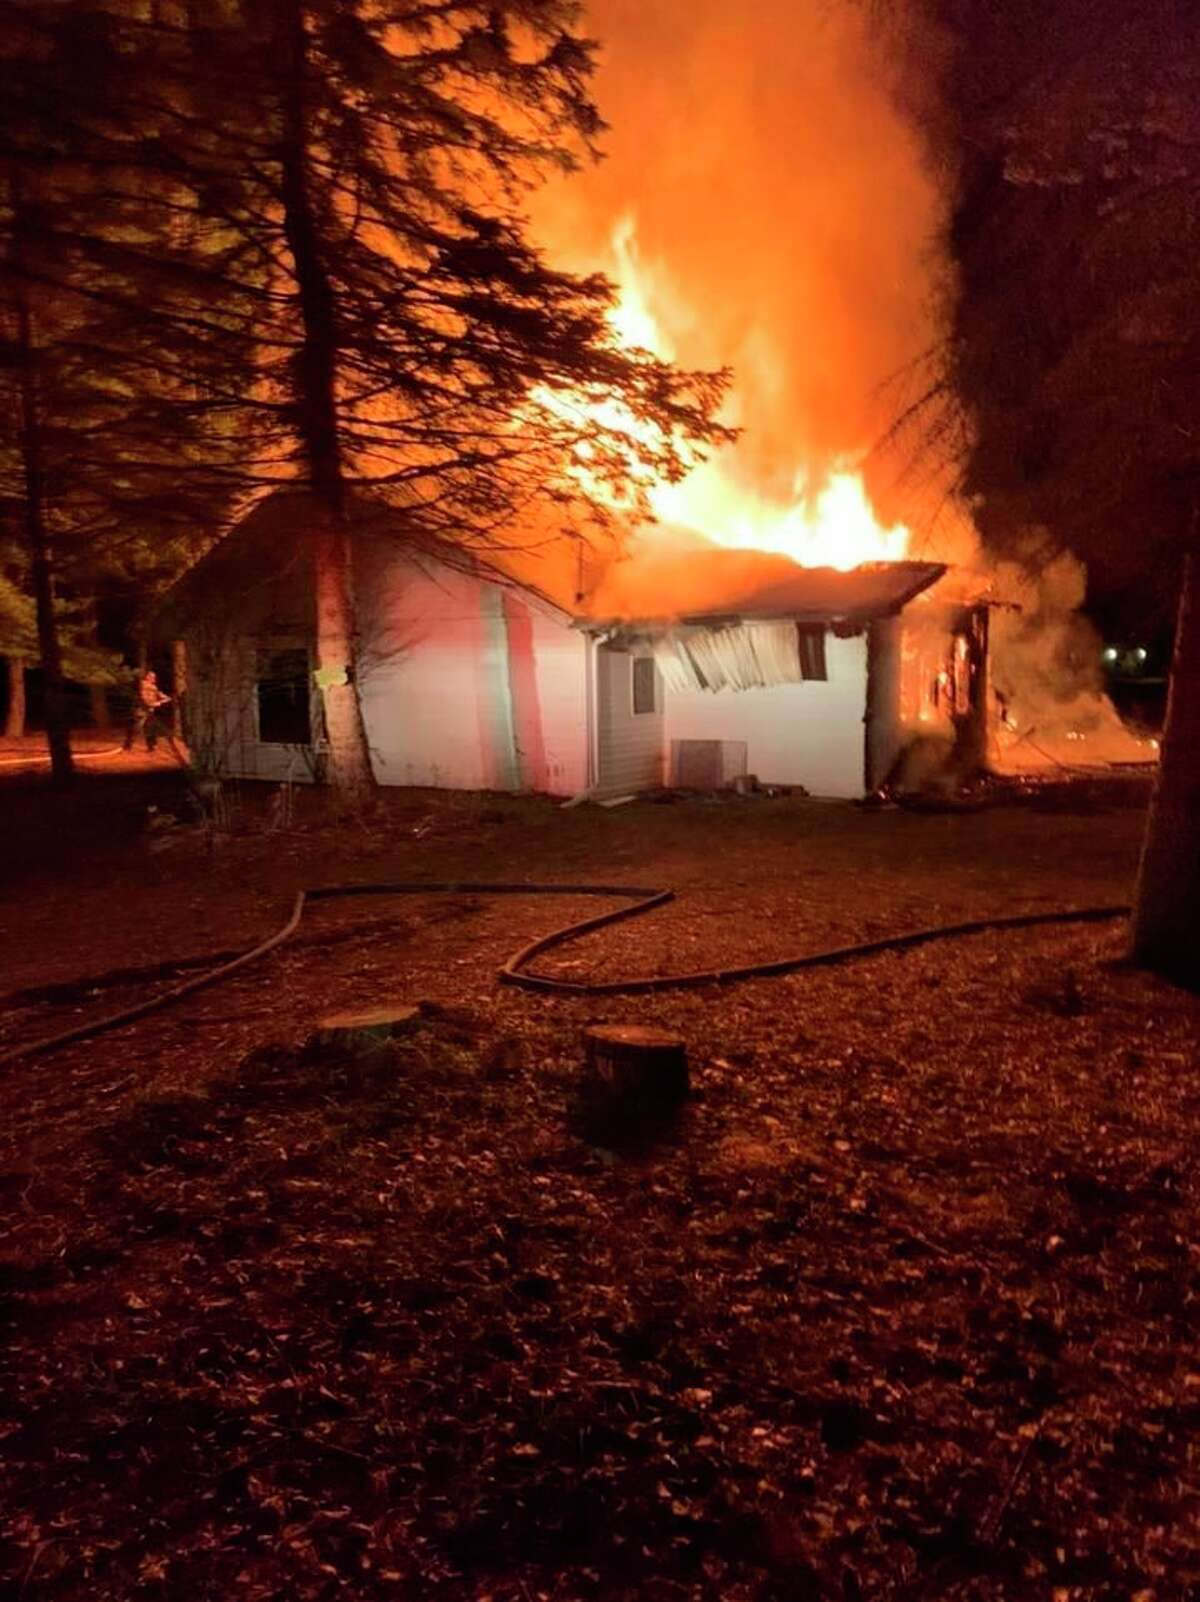 AForester Township home was destroyed by fire early Monday morning. The Port Sanilac, Deckerville, Carsonville, and Delaware Township fire departments were on hand to put the fire out. (Port Sanilac Fire Department/Courtesy Photo)